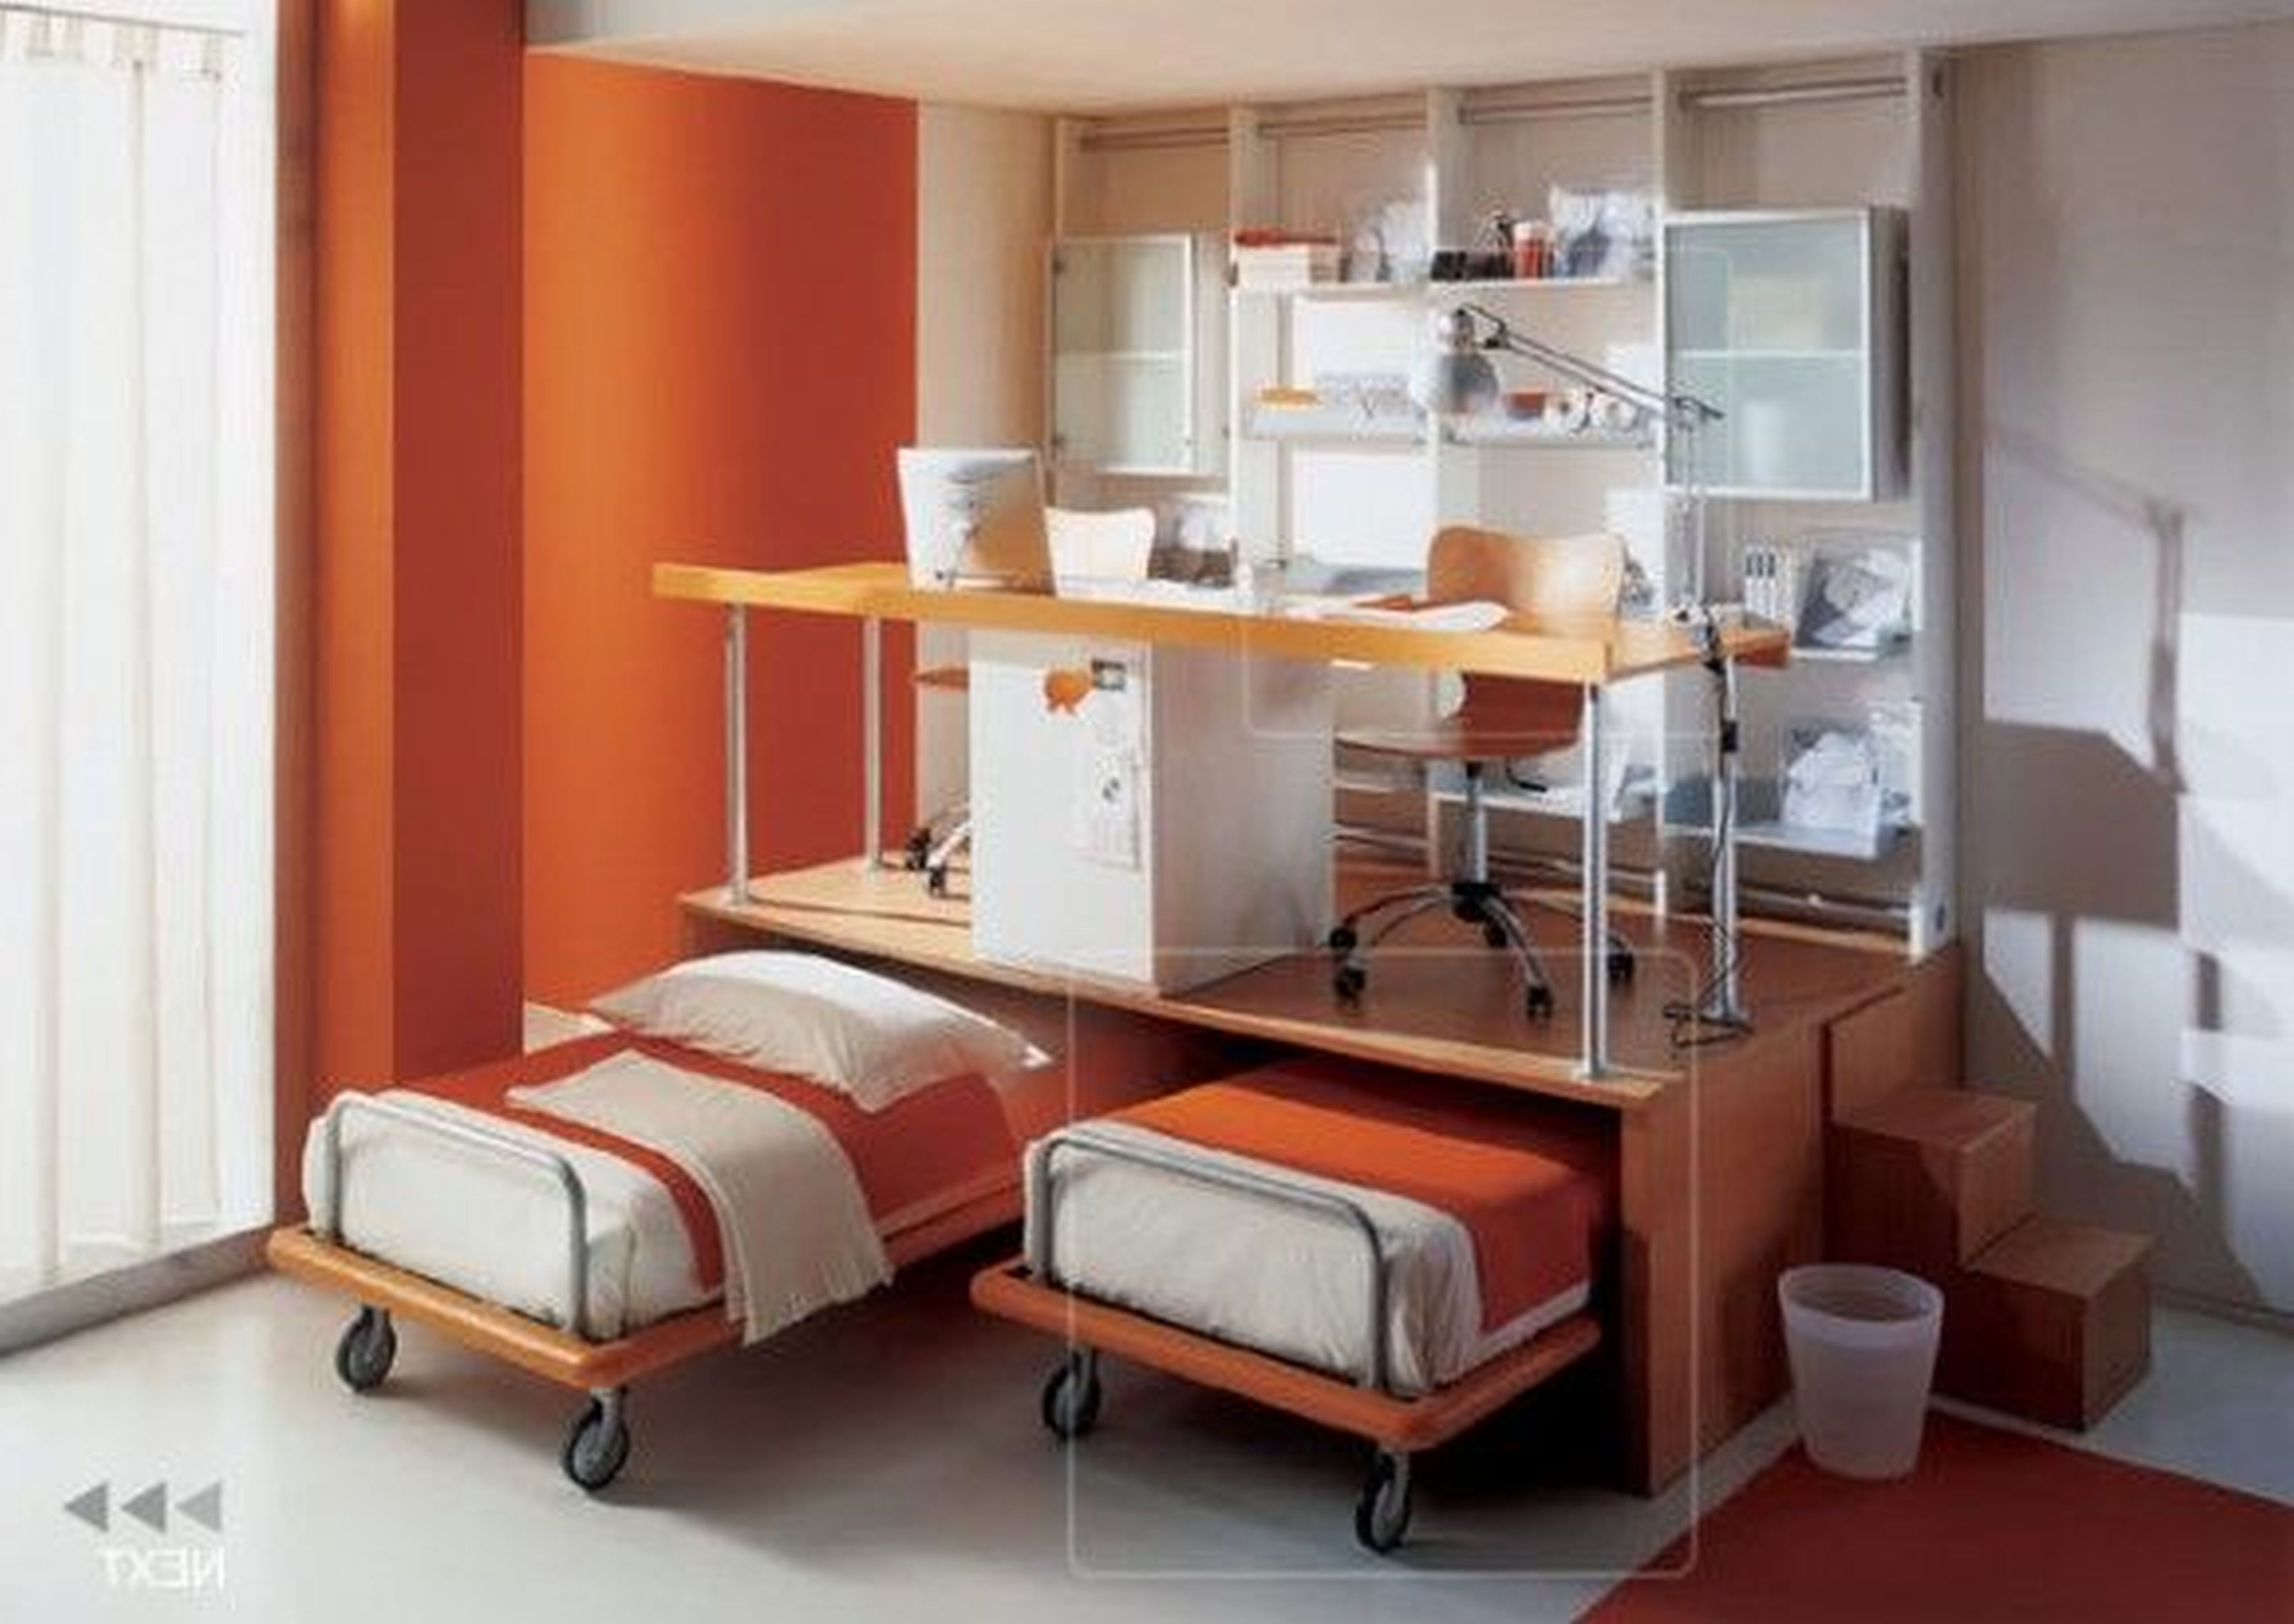 Decorating Ideas Kids Bedroom With Colorful Furniture Ikea Bedroom